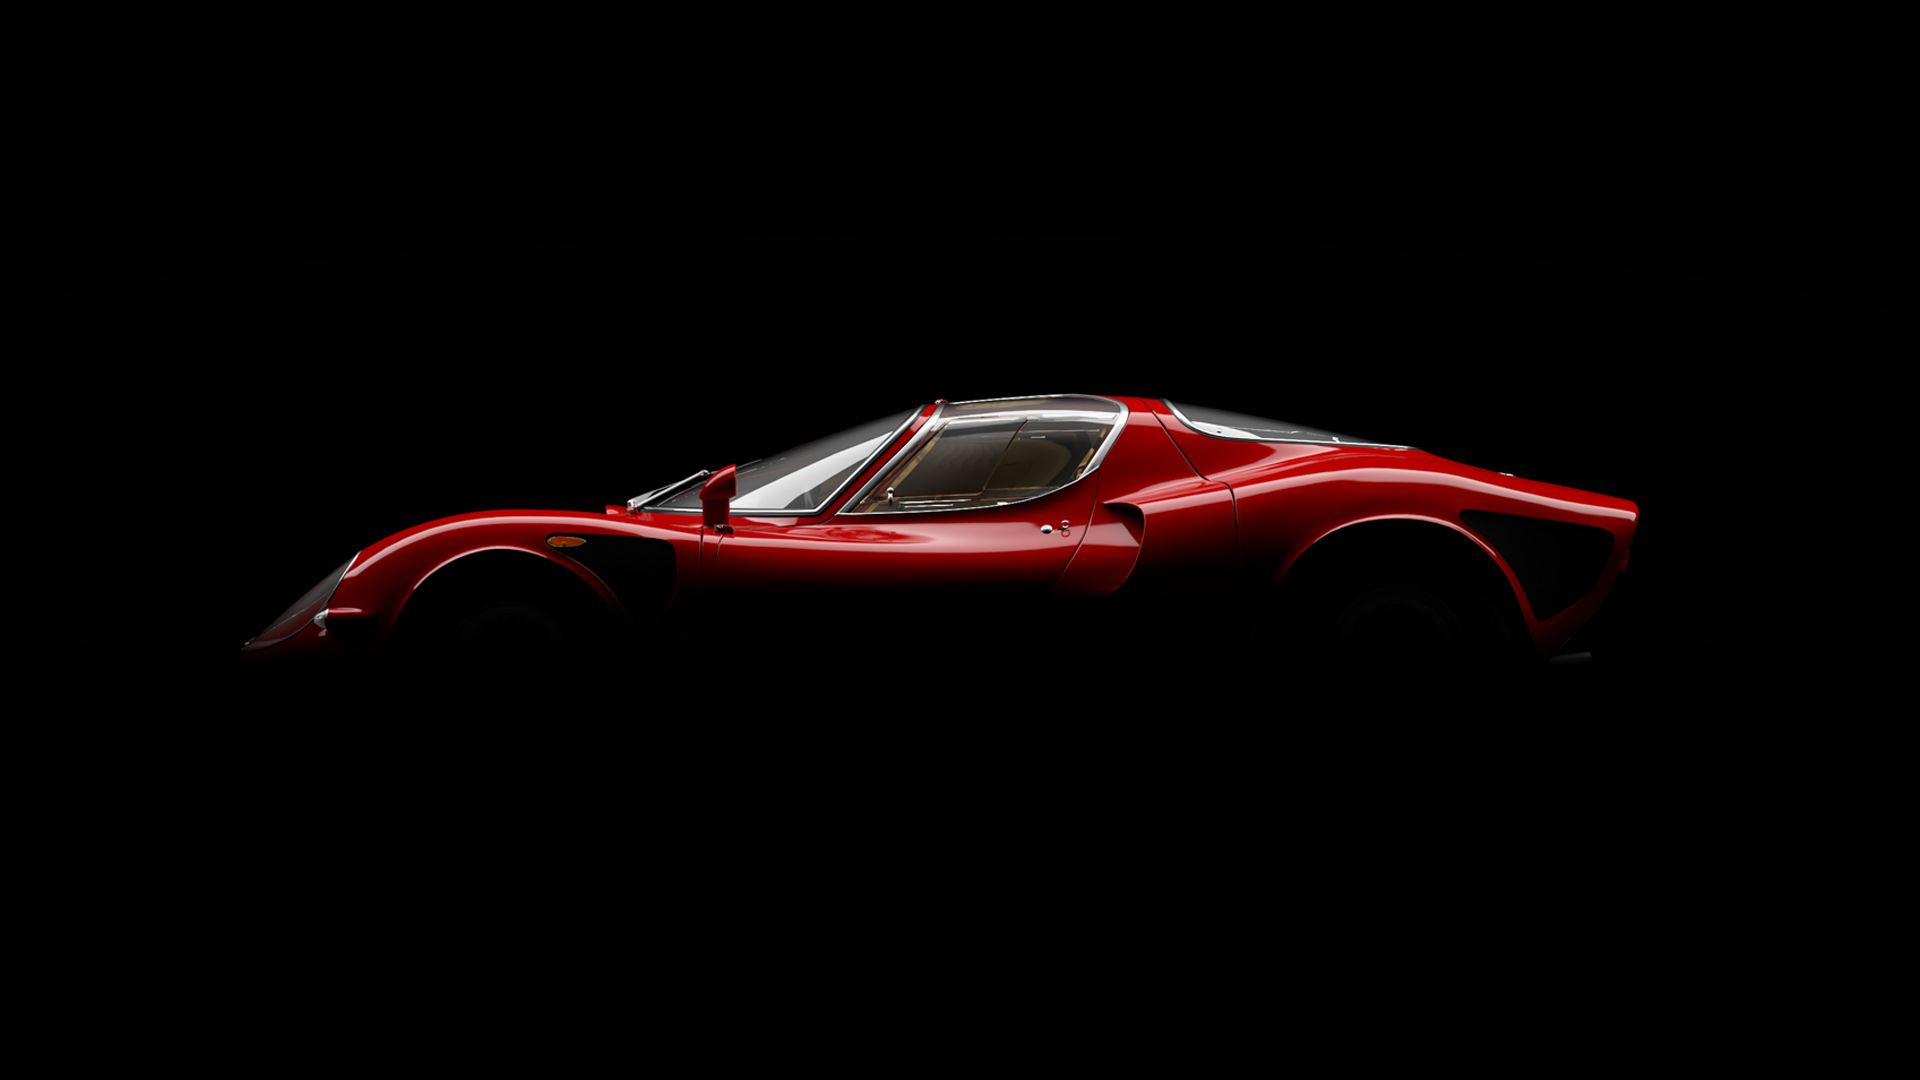 the world's most beautiful car, the alfa romeo 33 stradale turns 50